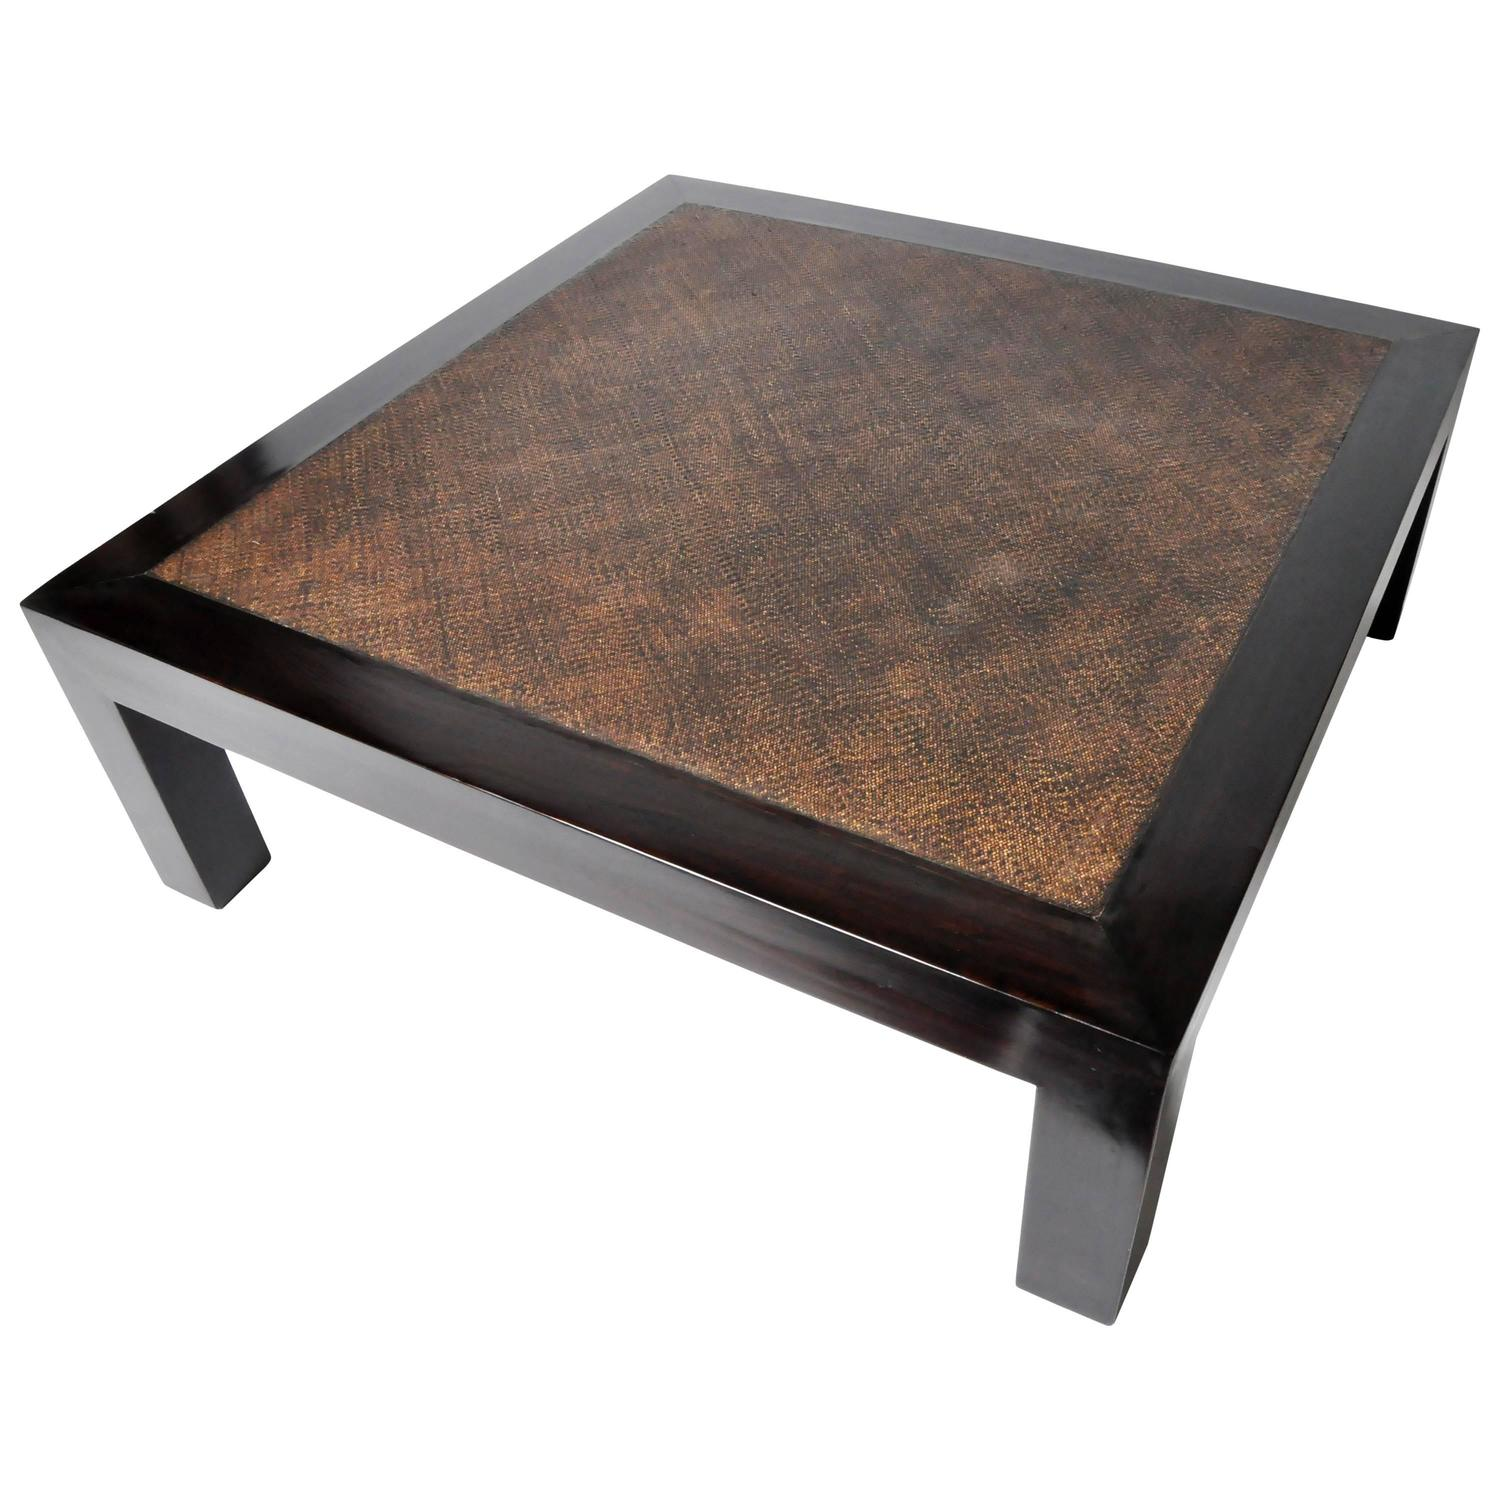 Gt atelier modern low table with rattan top at 1stdibs for Table fifty two 52 w elm st chicago il 60610